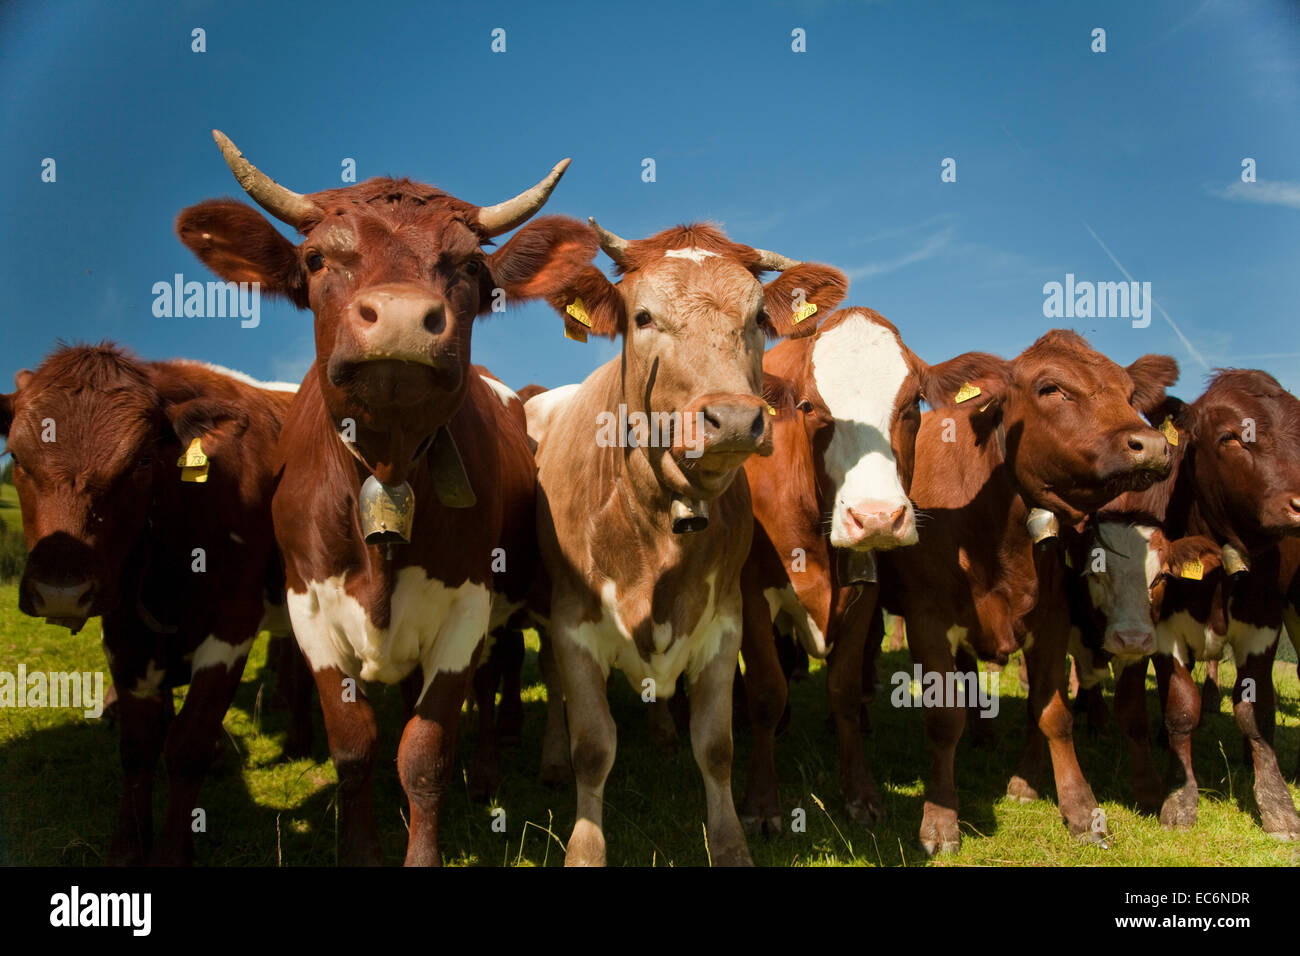 Cows coming closer. Frontshot of Cowherd, low angle, impressive - Stock Image